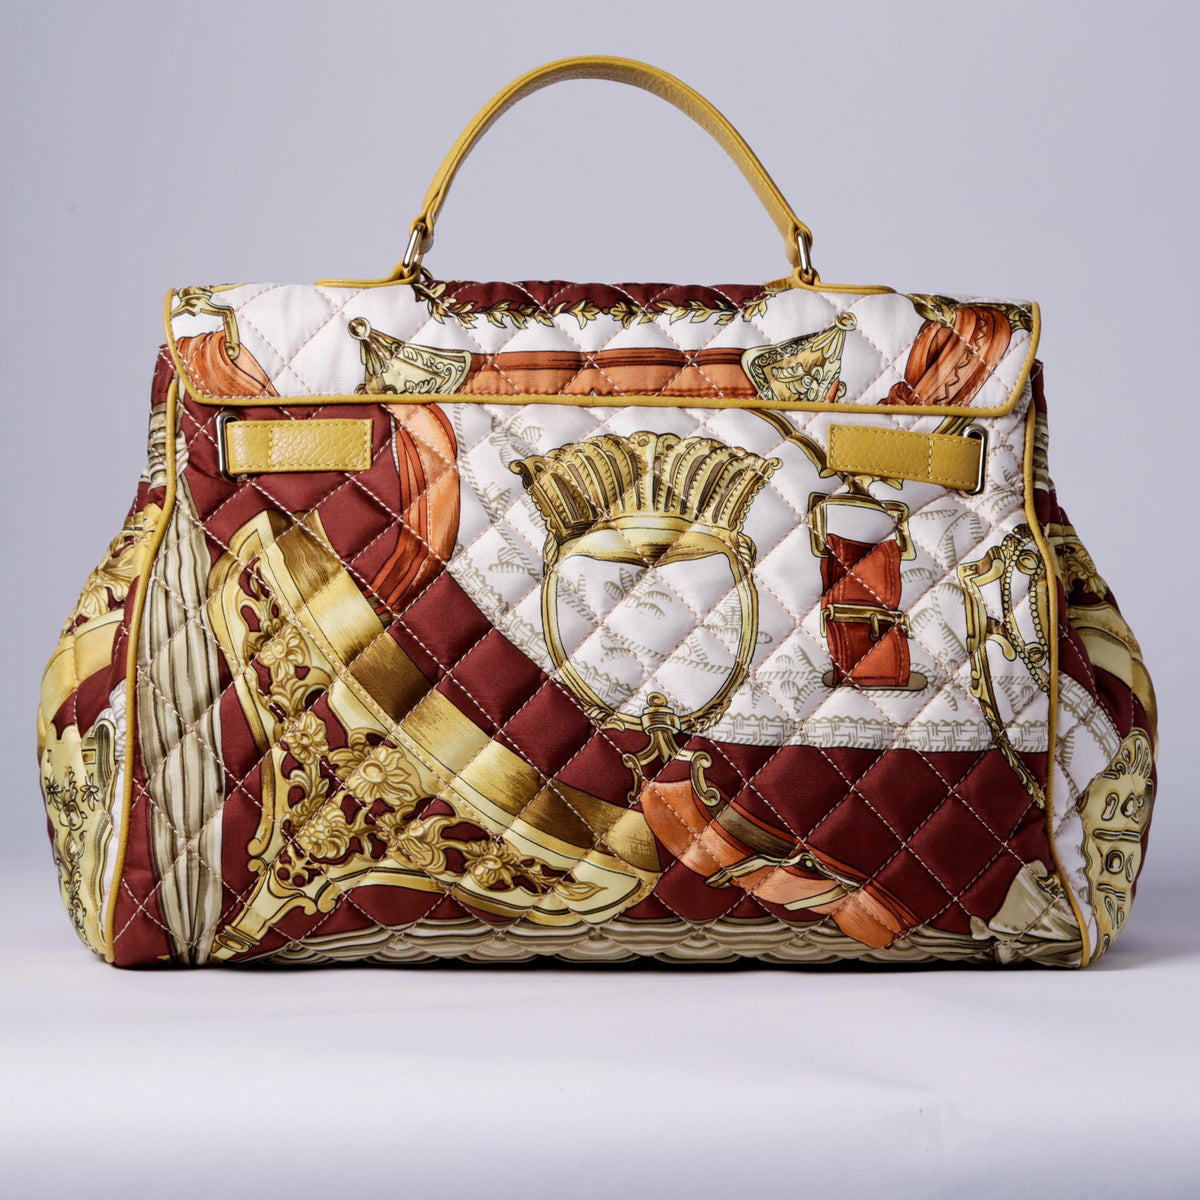 BAG DONATELLA BRUNELLO BAG, CLOE